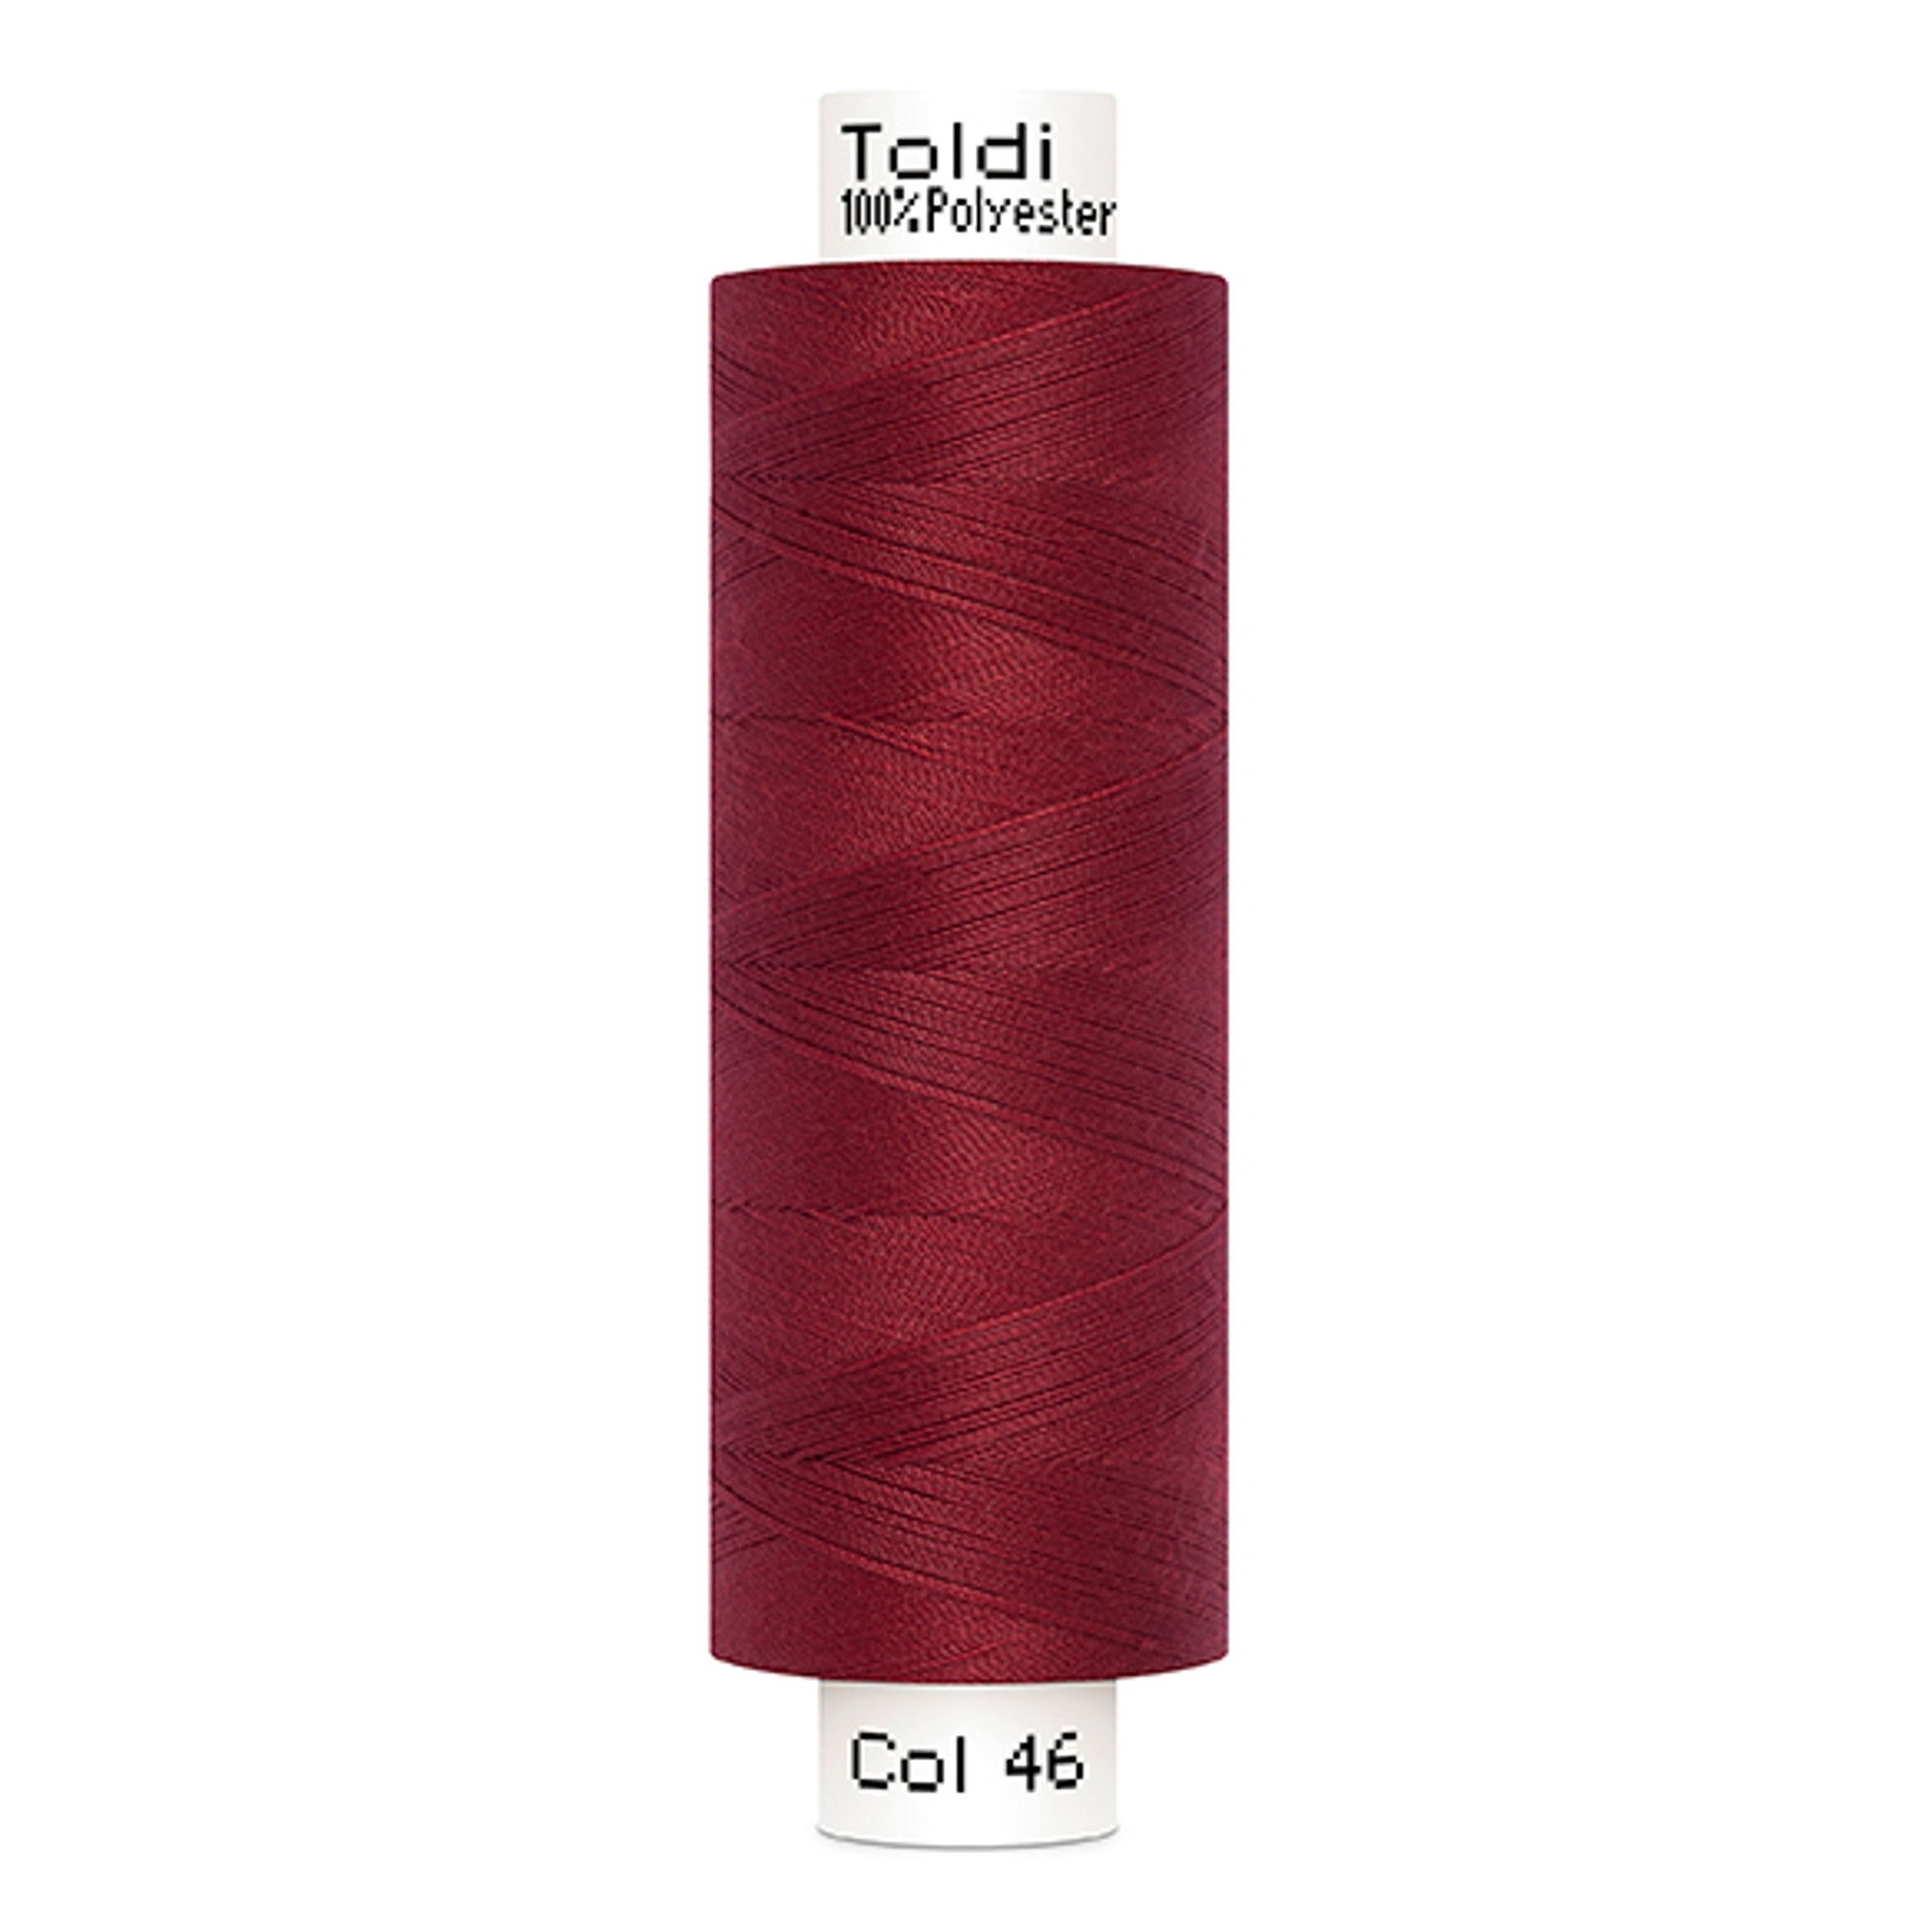 Gütermann Toldi Sewing Thread, 500 m, darkred | 707589-46 |